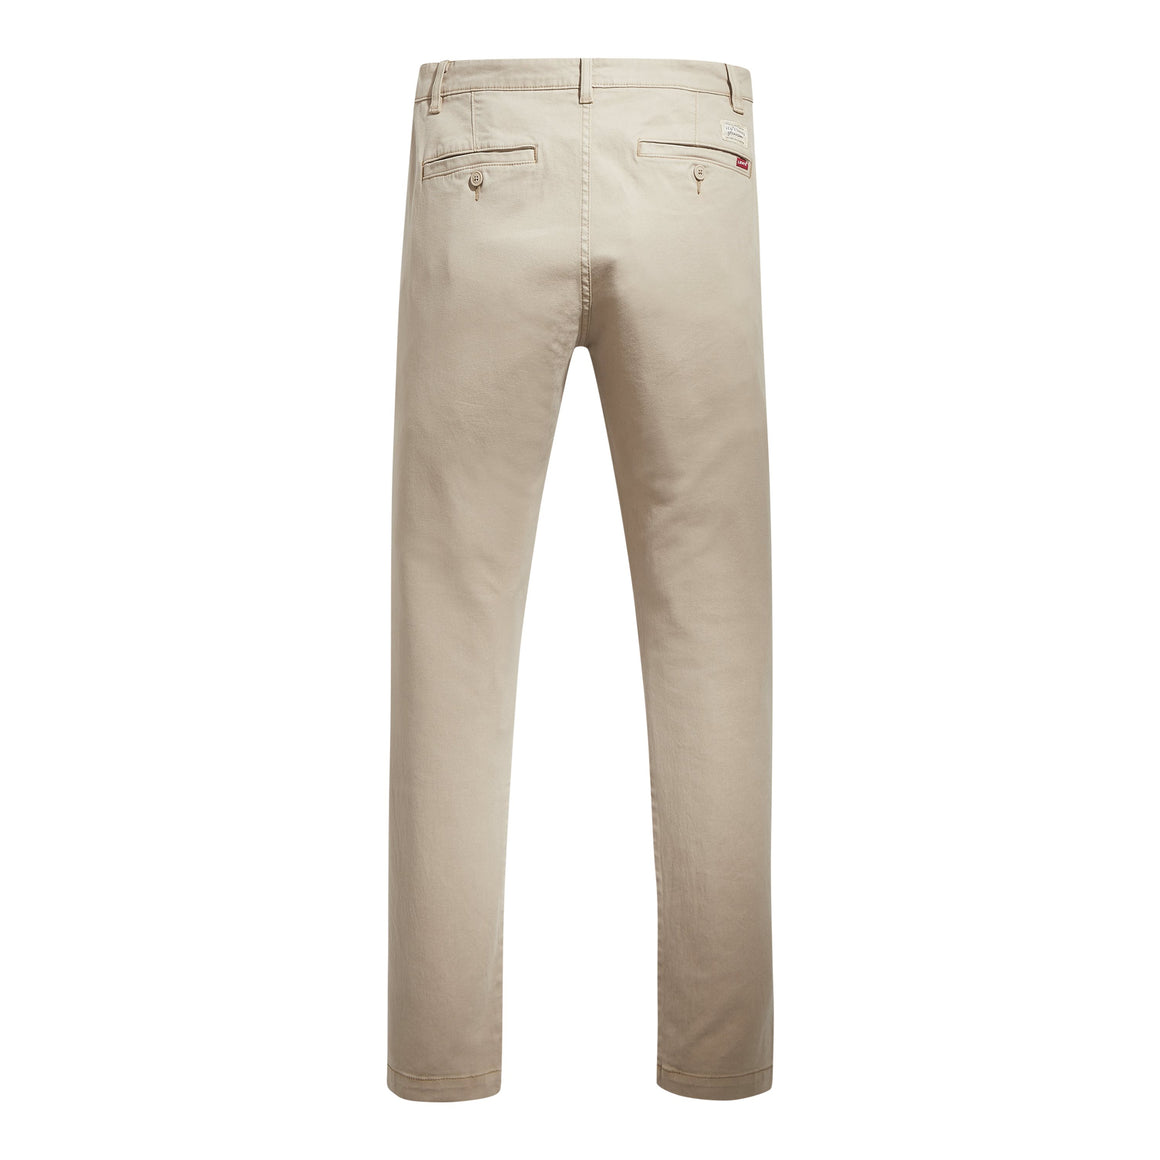 XX Chino Slim 11 for Men in True Chino Shady